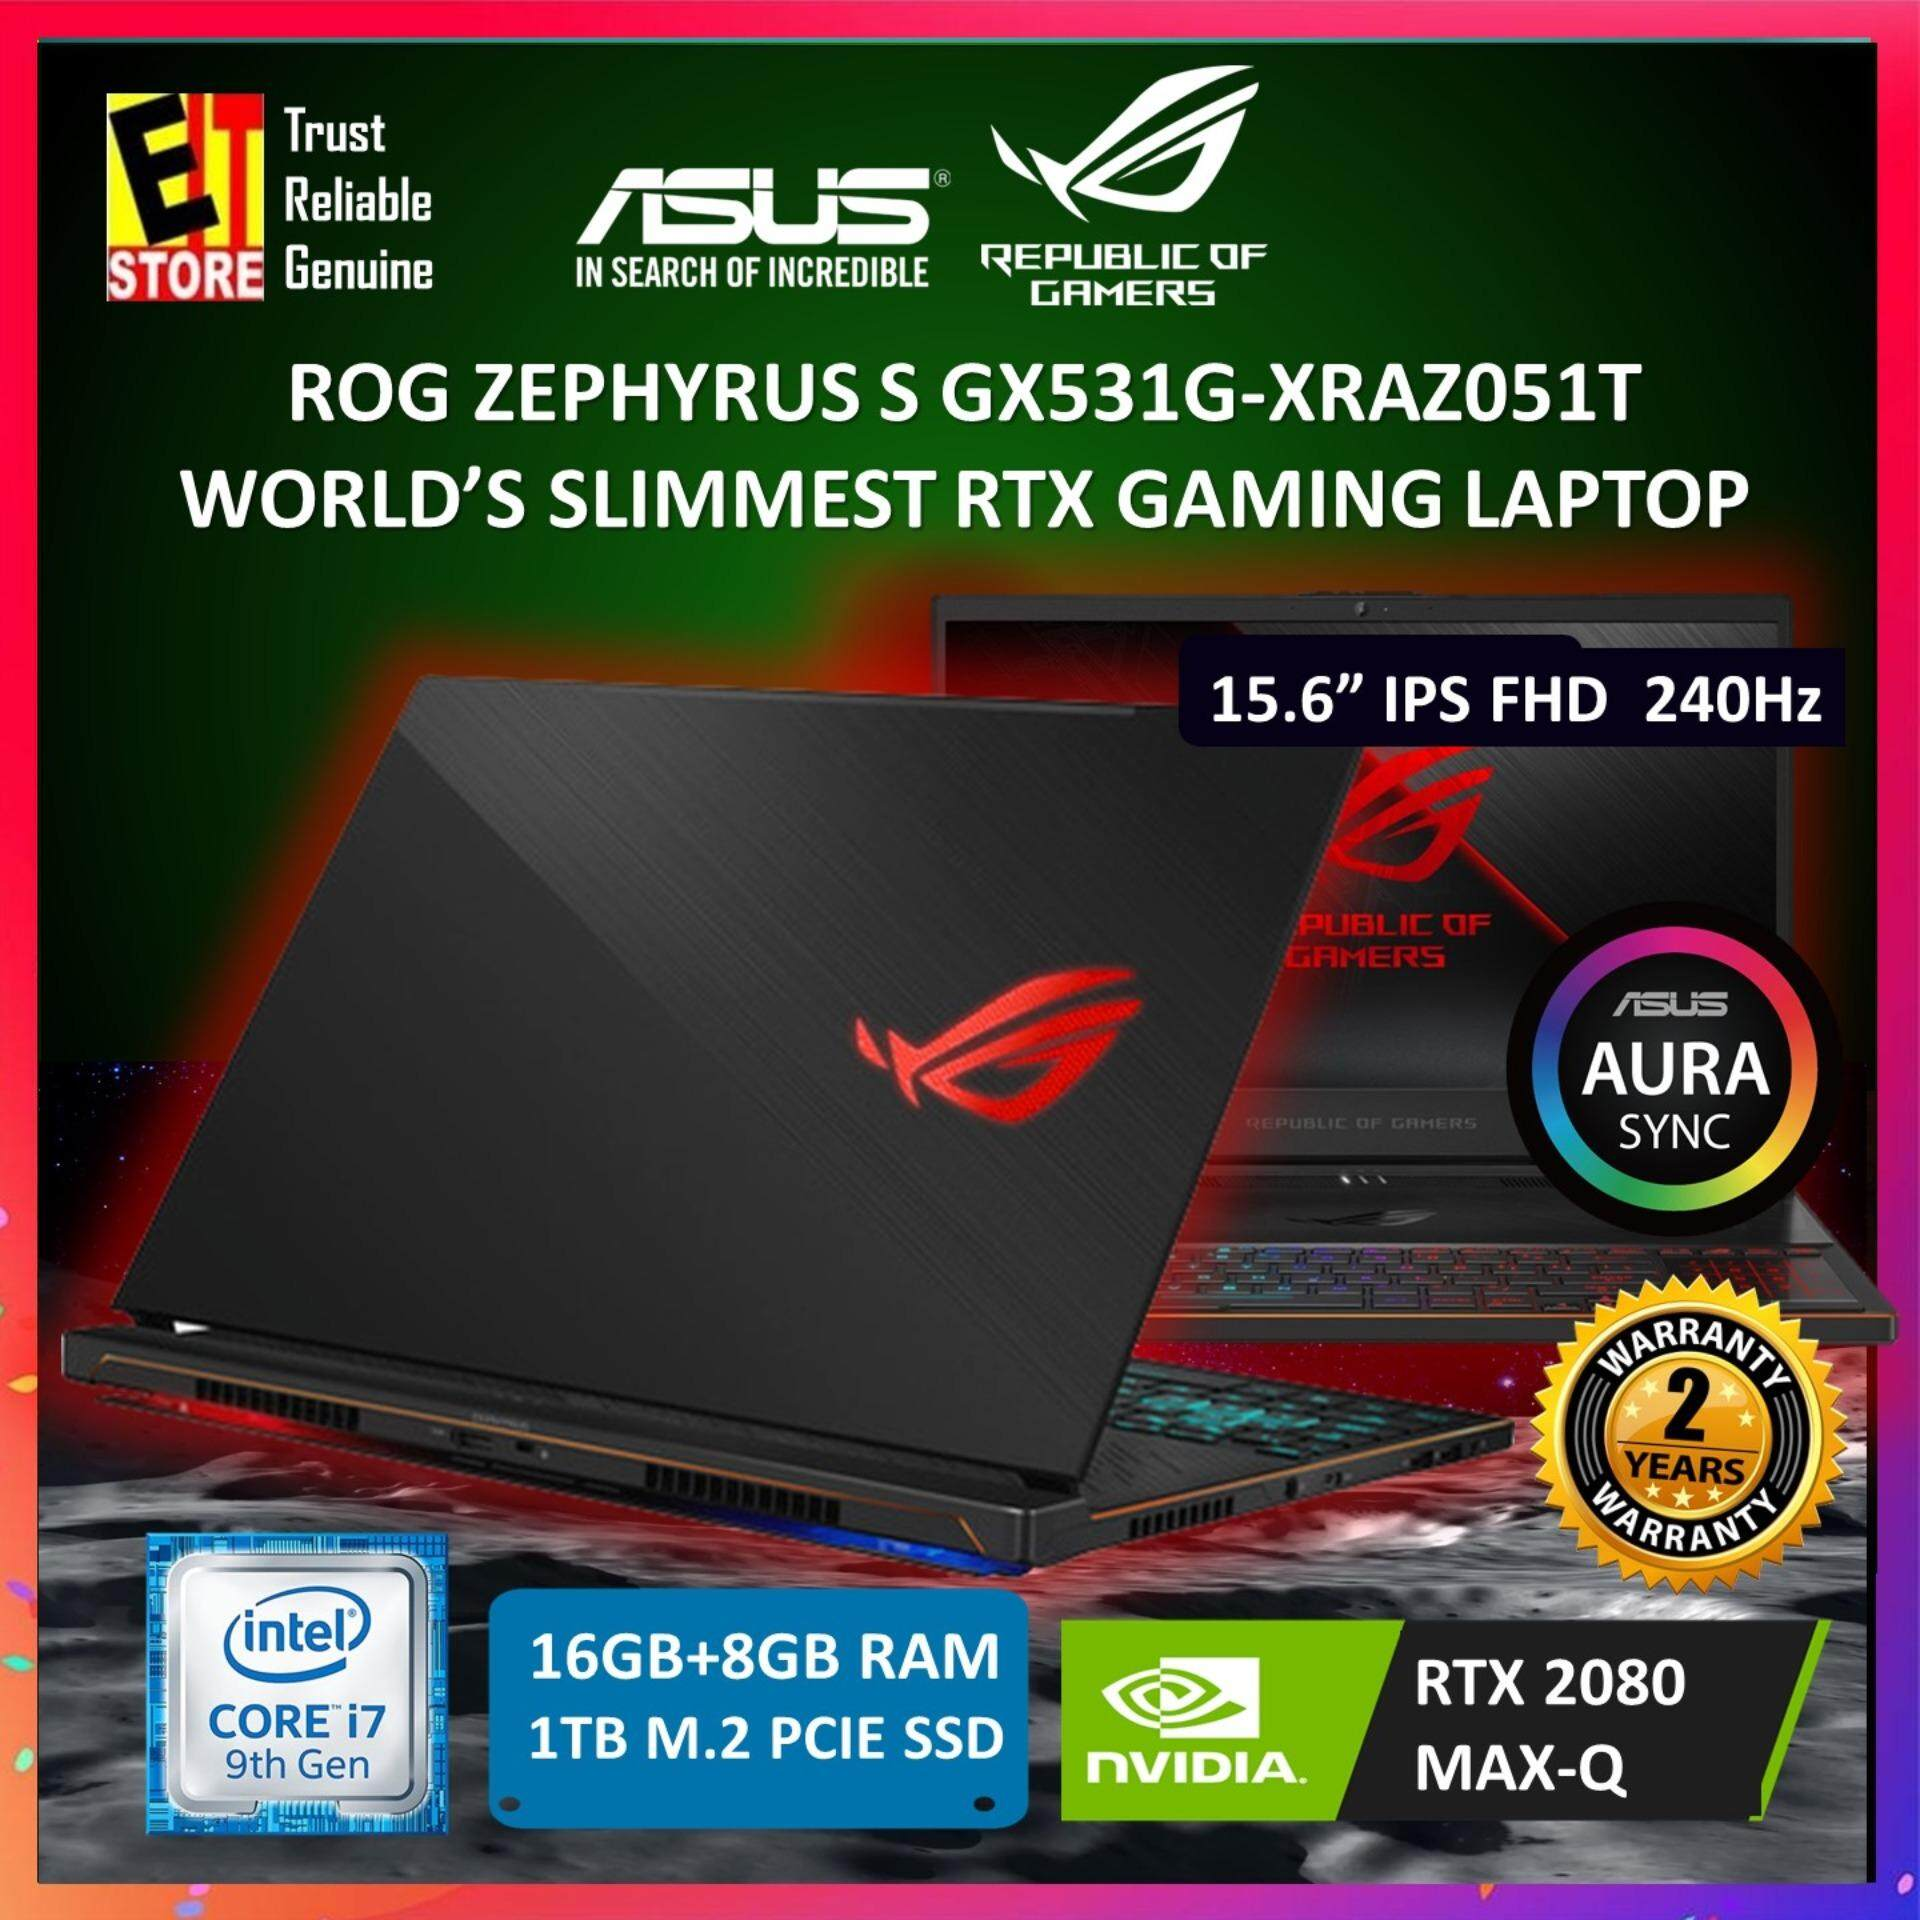 ASUS ROG ZEPHYRUS S GX531G-XRAZ051T (I7-9750H/16G+8G[ON BD]/1TB SSD/RTX 2080 (MAX-Q) 8VG/15.6/W10/2YRS) + MOUSE, HEADSET, BAG Malaysia